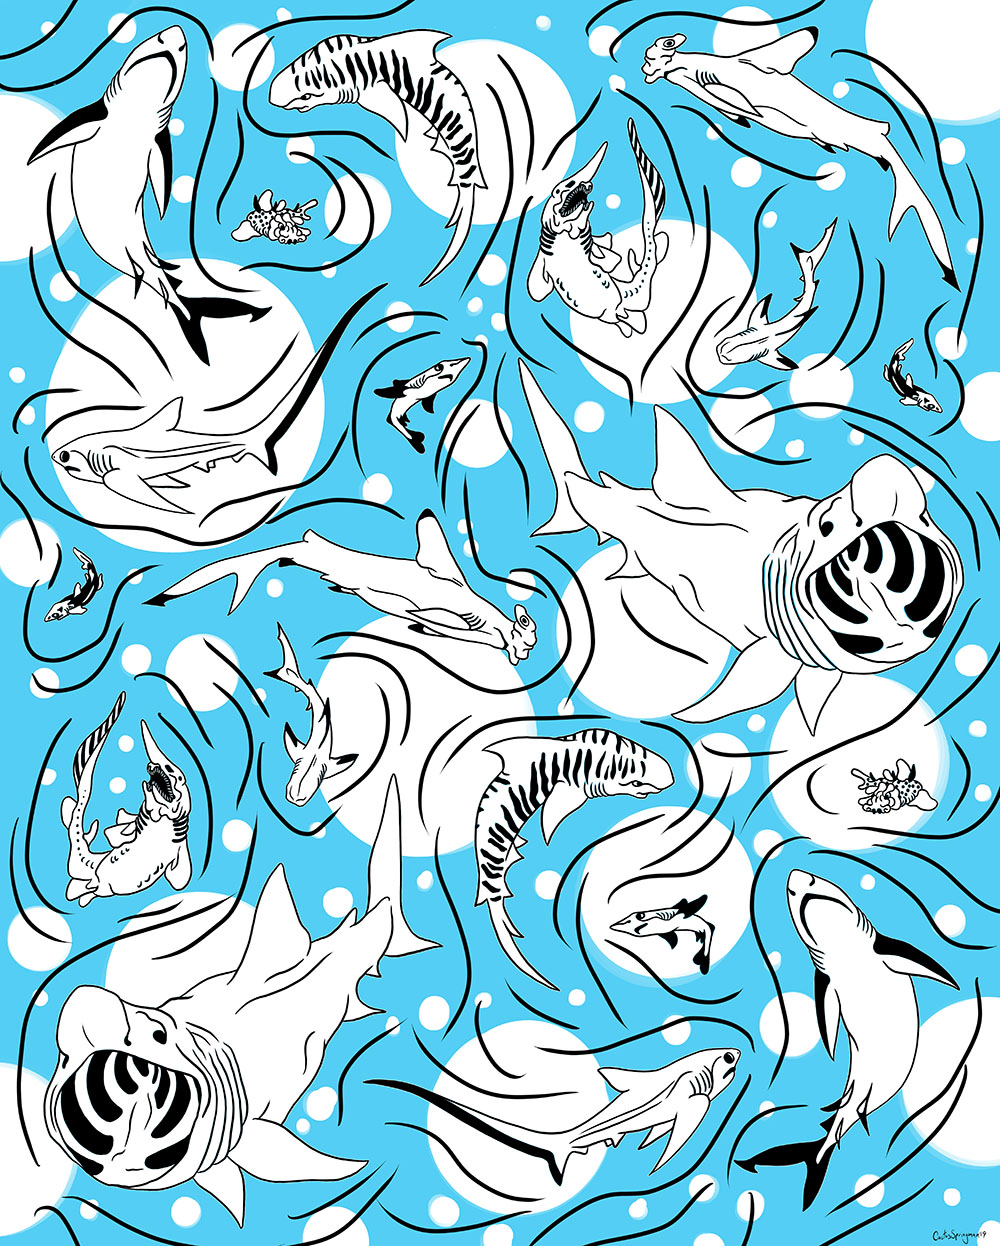 Sharks, by Cactus Springman. A digital illustration of various species of sharks all swimming around each other. The sharks and water ripples are black, while the background water and bubbles are blue and white. The sharks are repeated as an asymmetrical pattern throughout the piece.